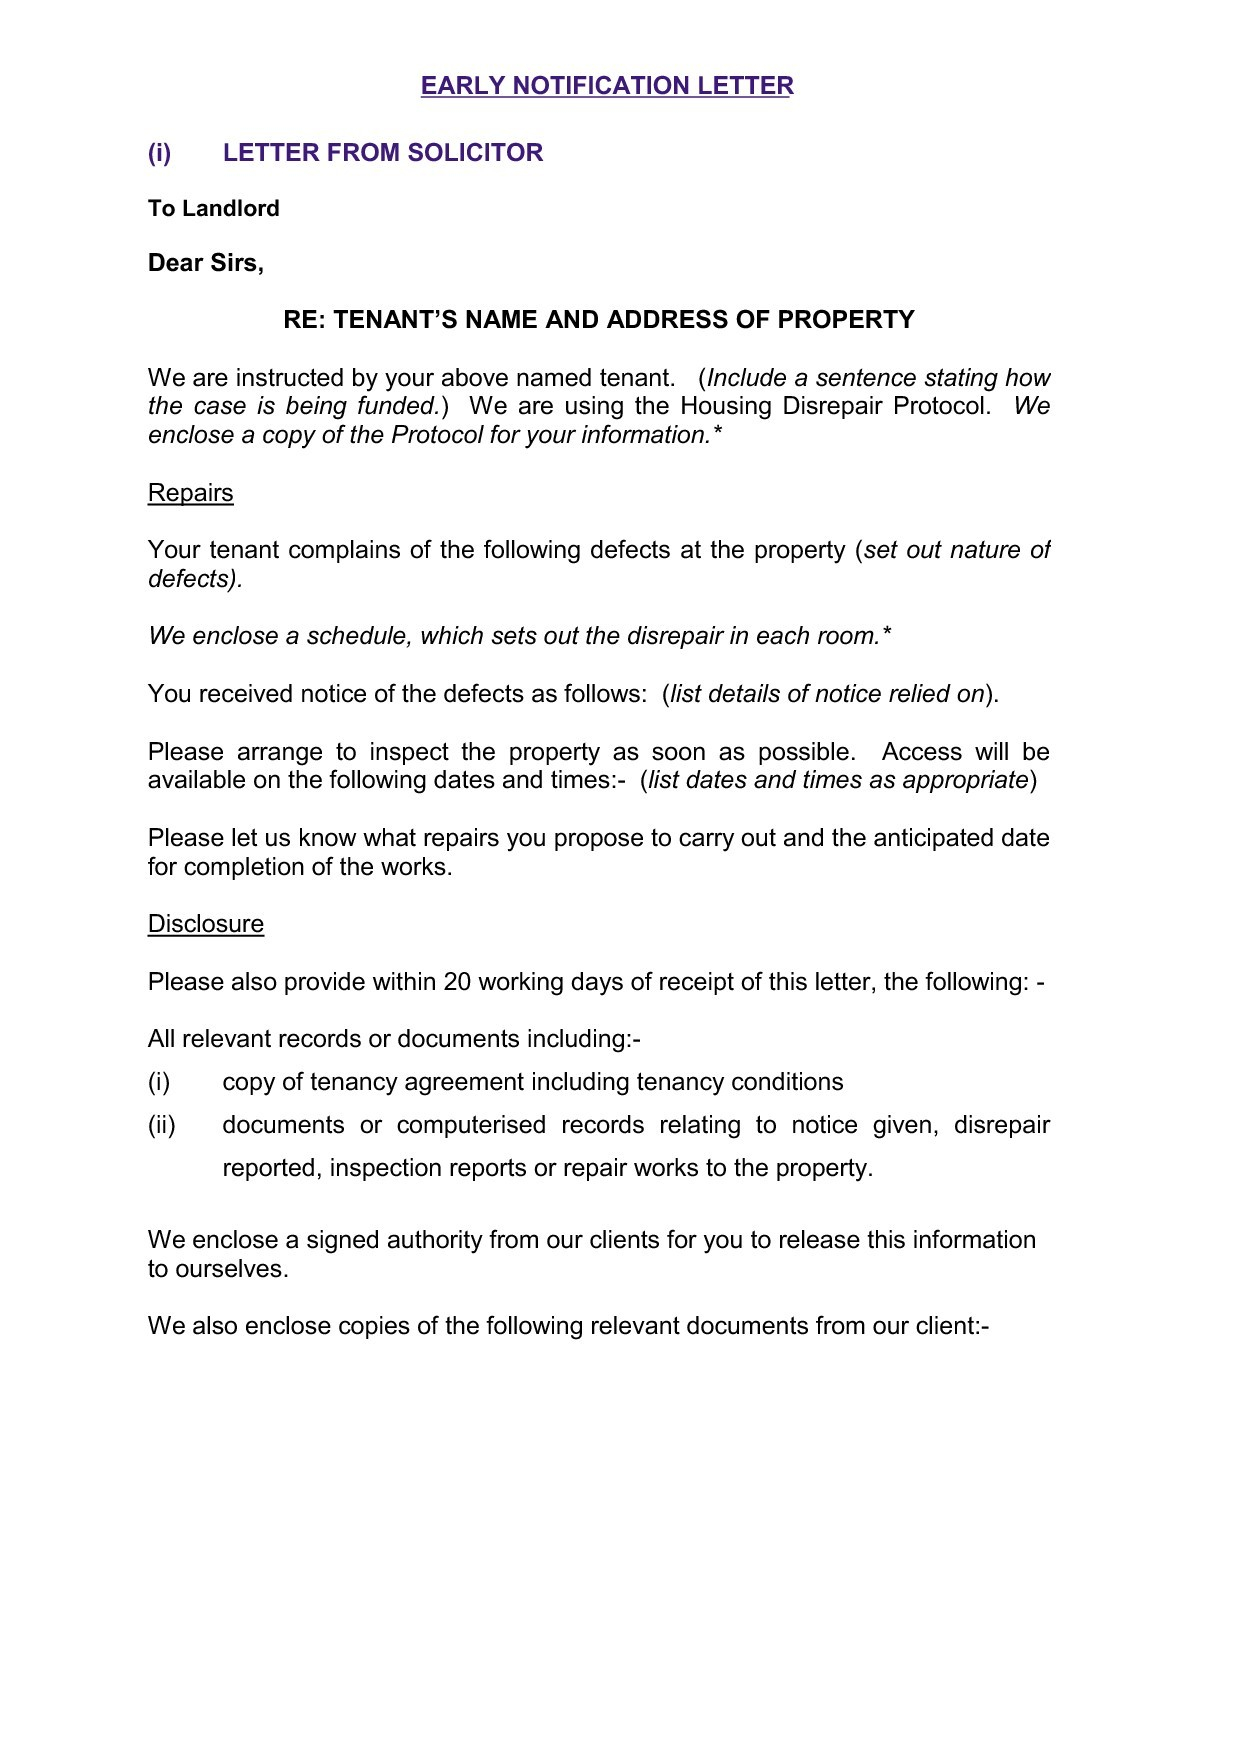 letter analysis settlement offer letter template examples letter 15106 | property inspection letter to tenant uk archives new property of property inspection letter to tenant template